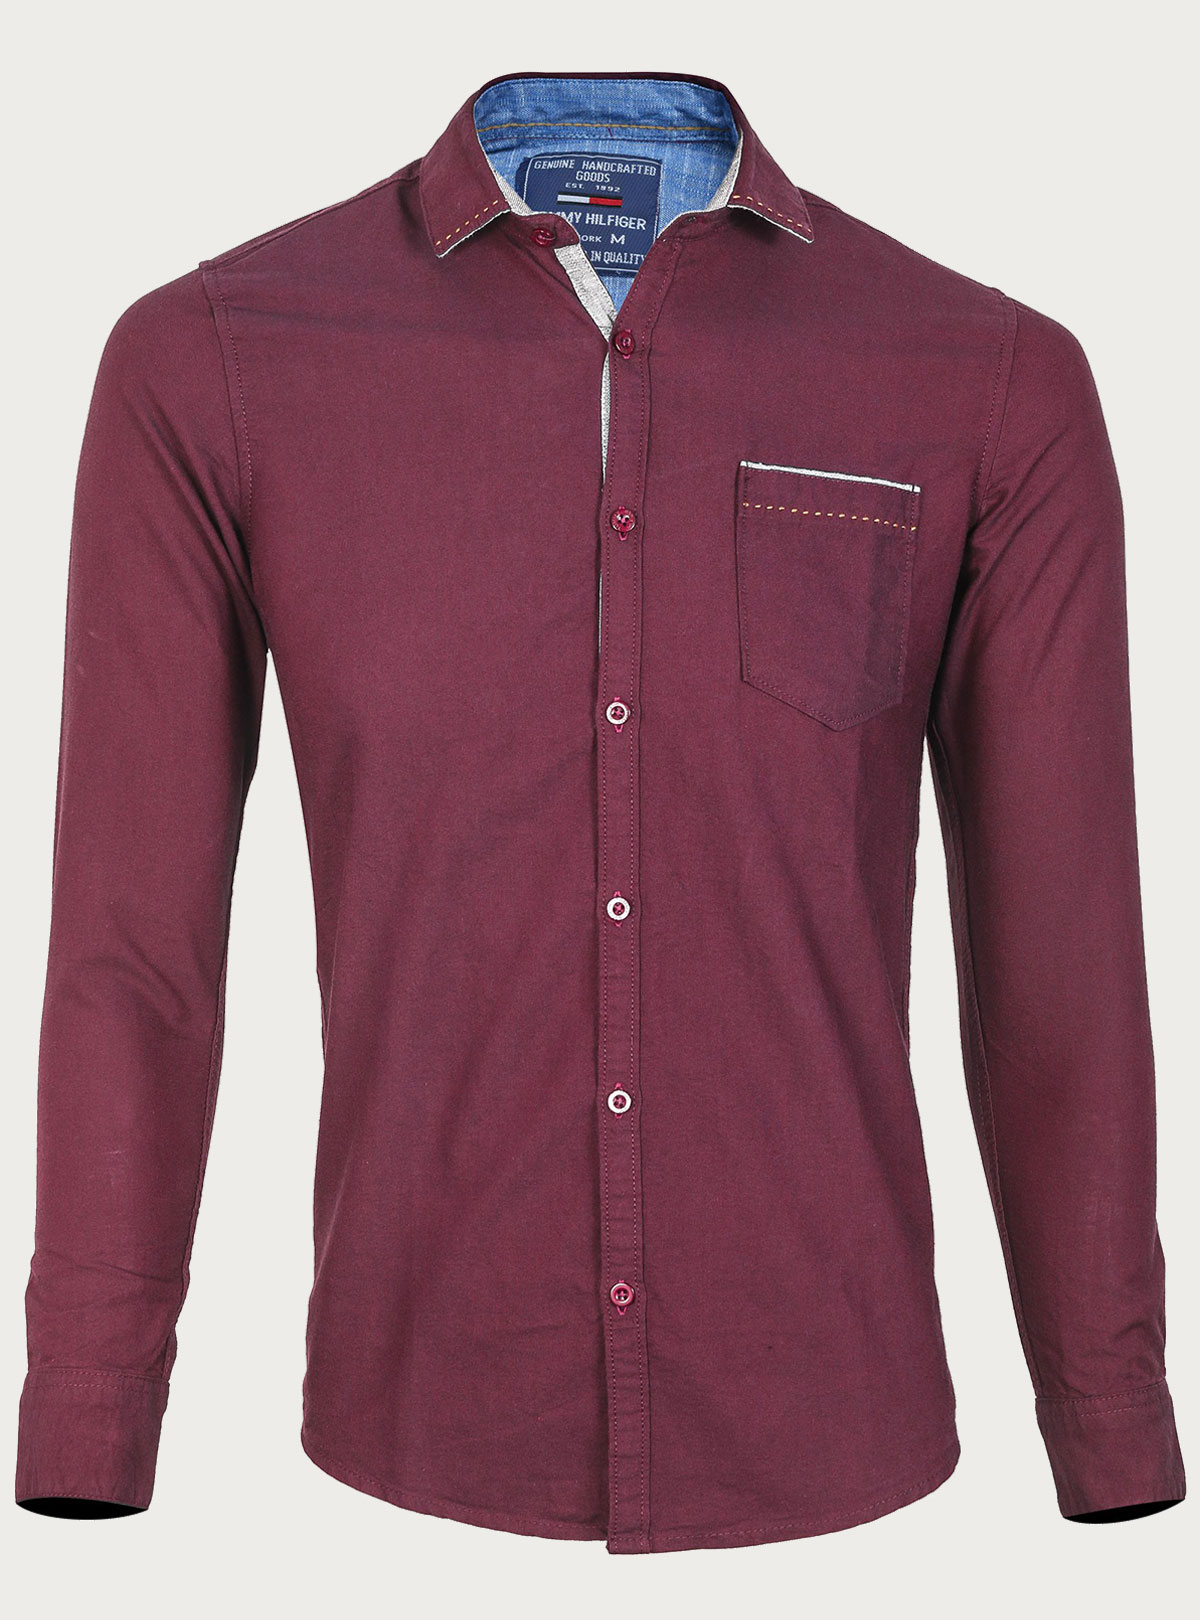 STYLISH CASUAL SHIRT BY TOMMY HILFIGER